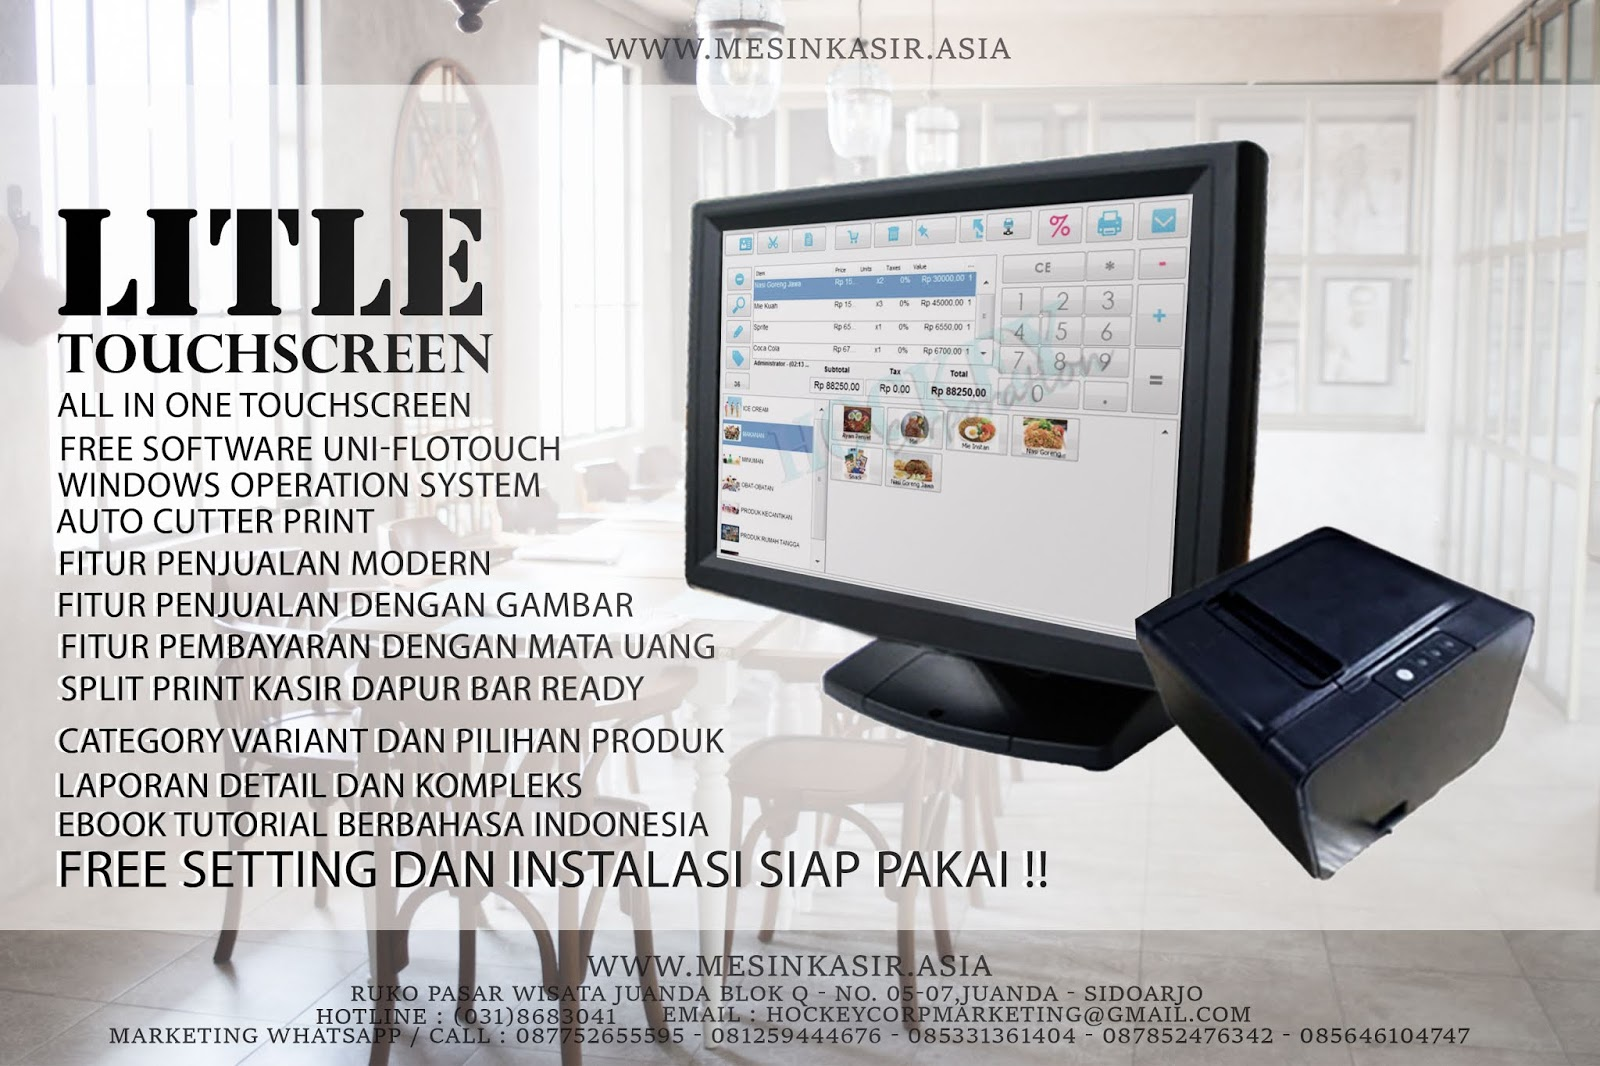 terbaru mesin kasir touchscreen all in one